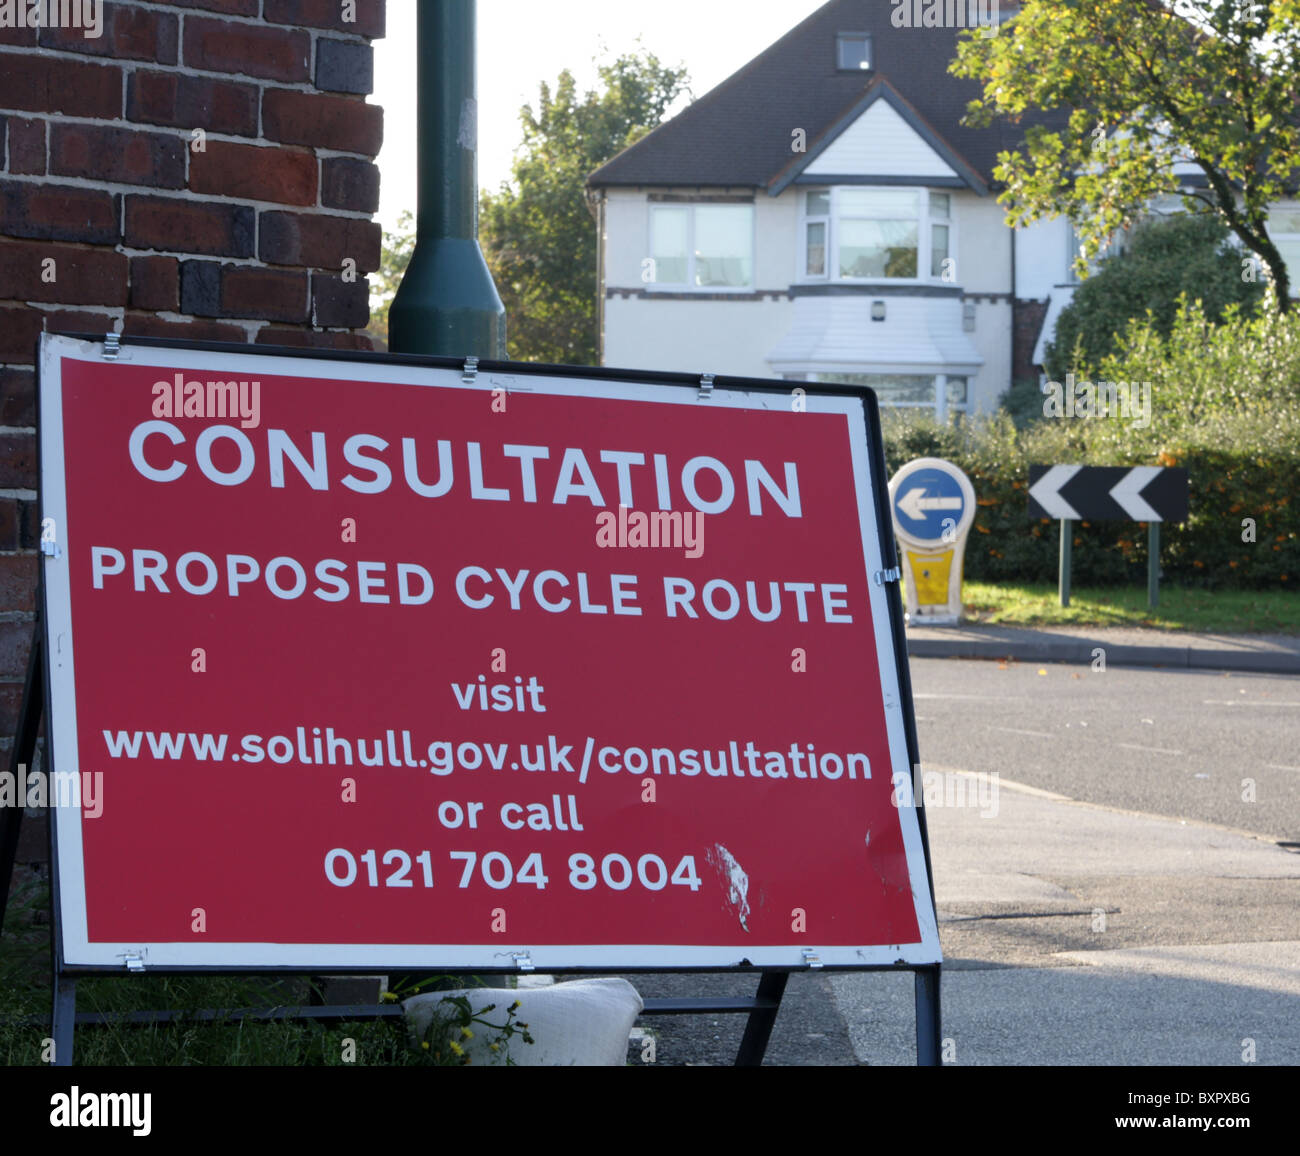 Consultation proposed cycle route sign, UK 2010 Stock Photo